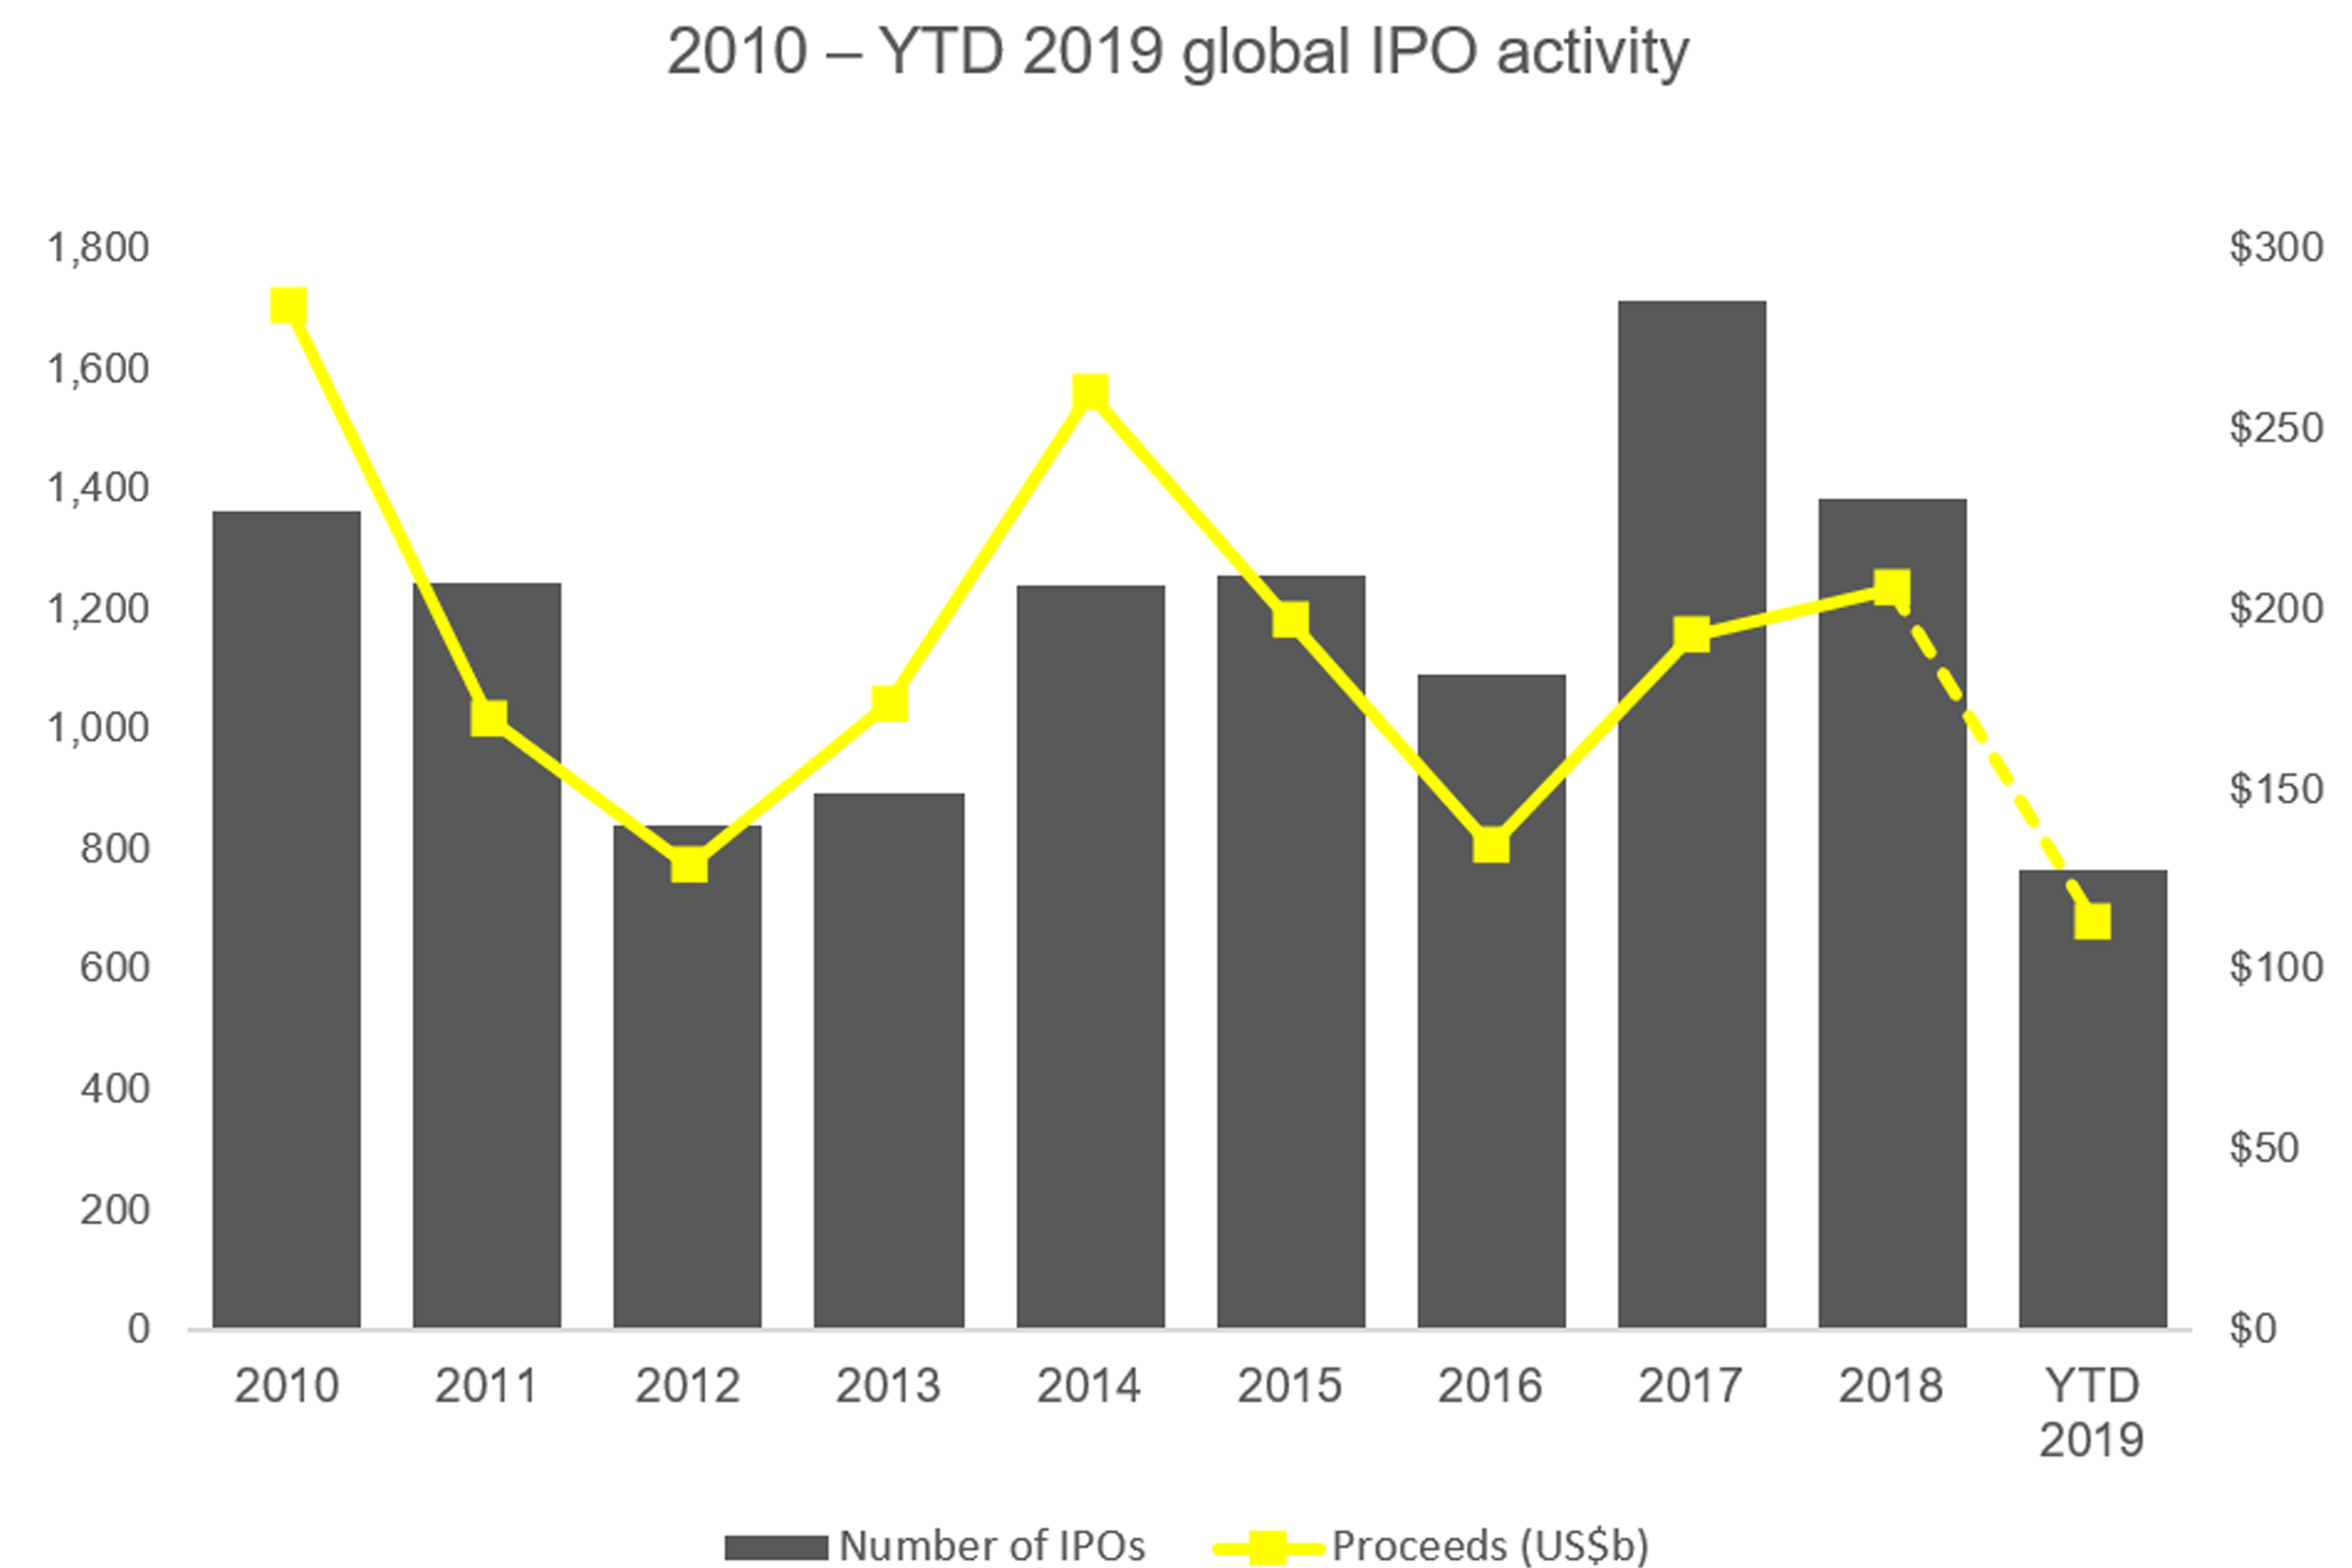 Graphic: 2010 – YTD 2019 global IPO activity